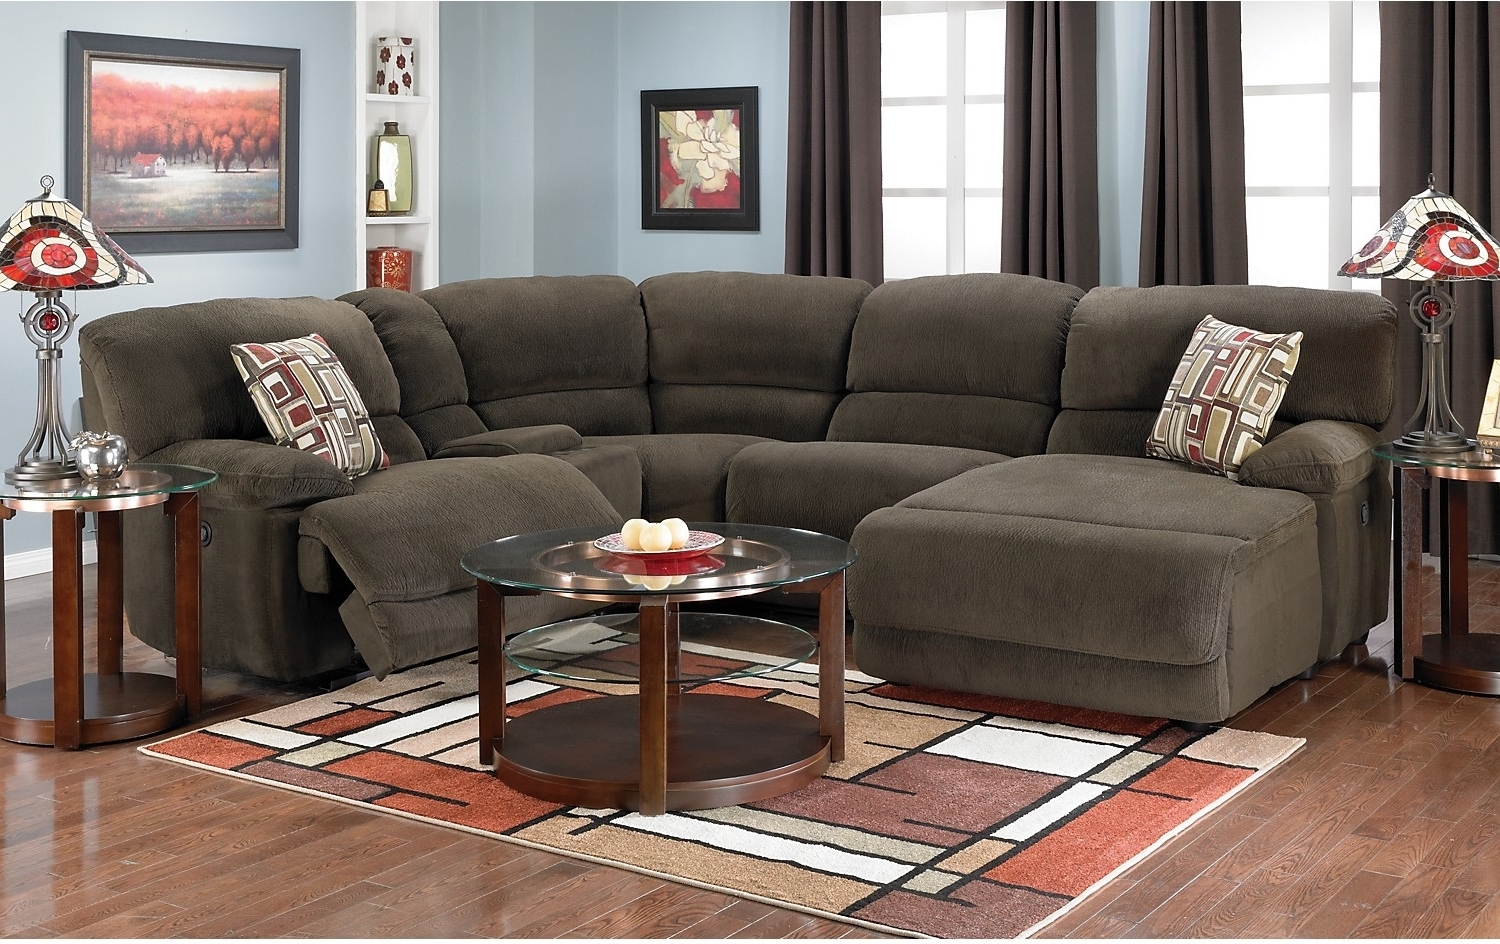 Latest The Brick Sectional Sofas – Cleanupflorida Inside The Brick Sectional Sofas (View 3 of 15)